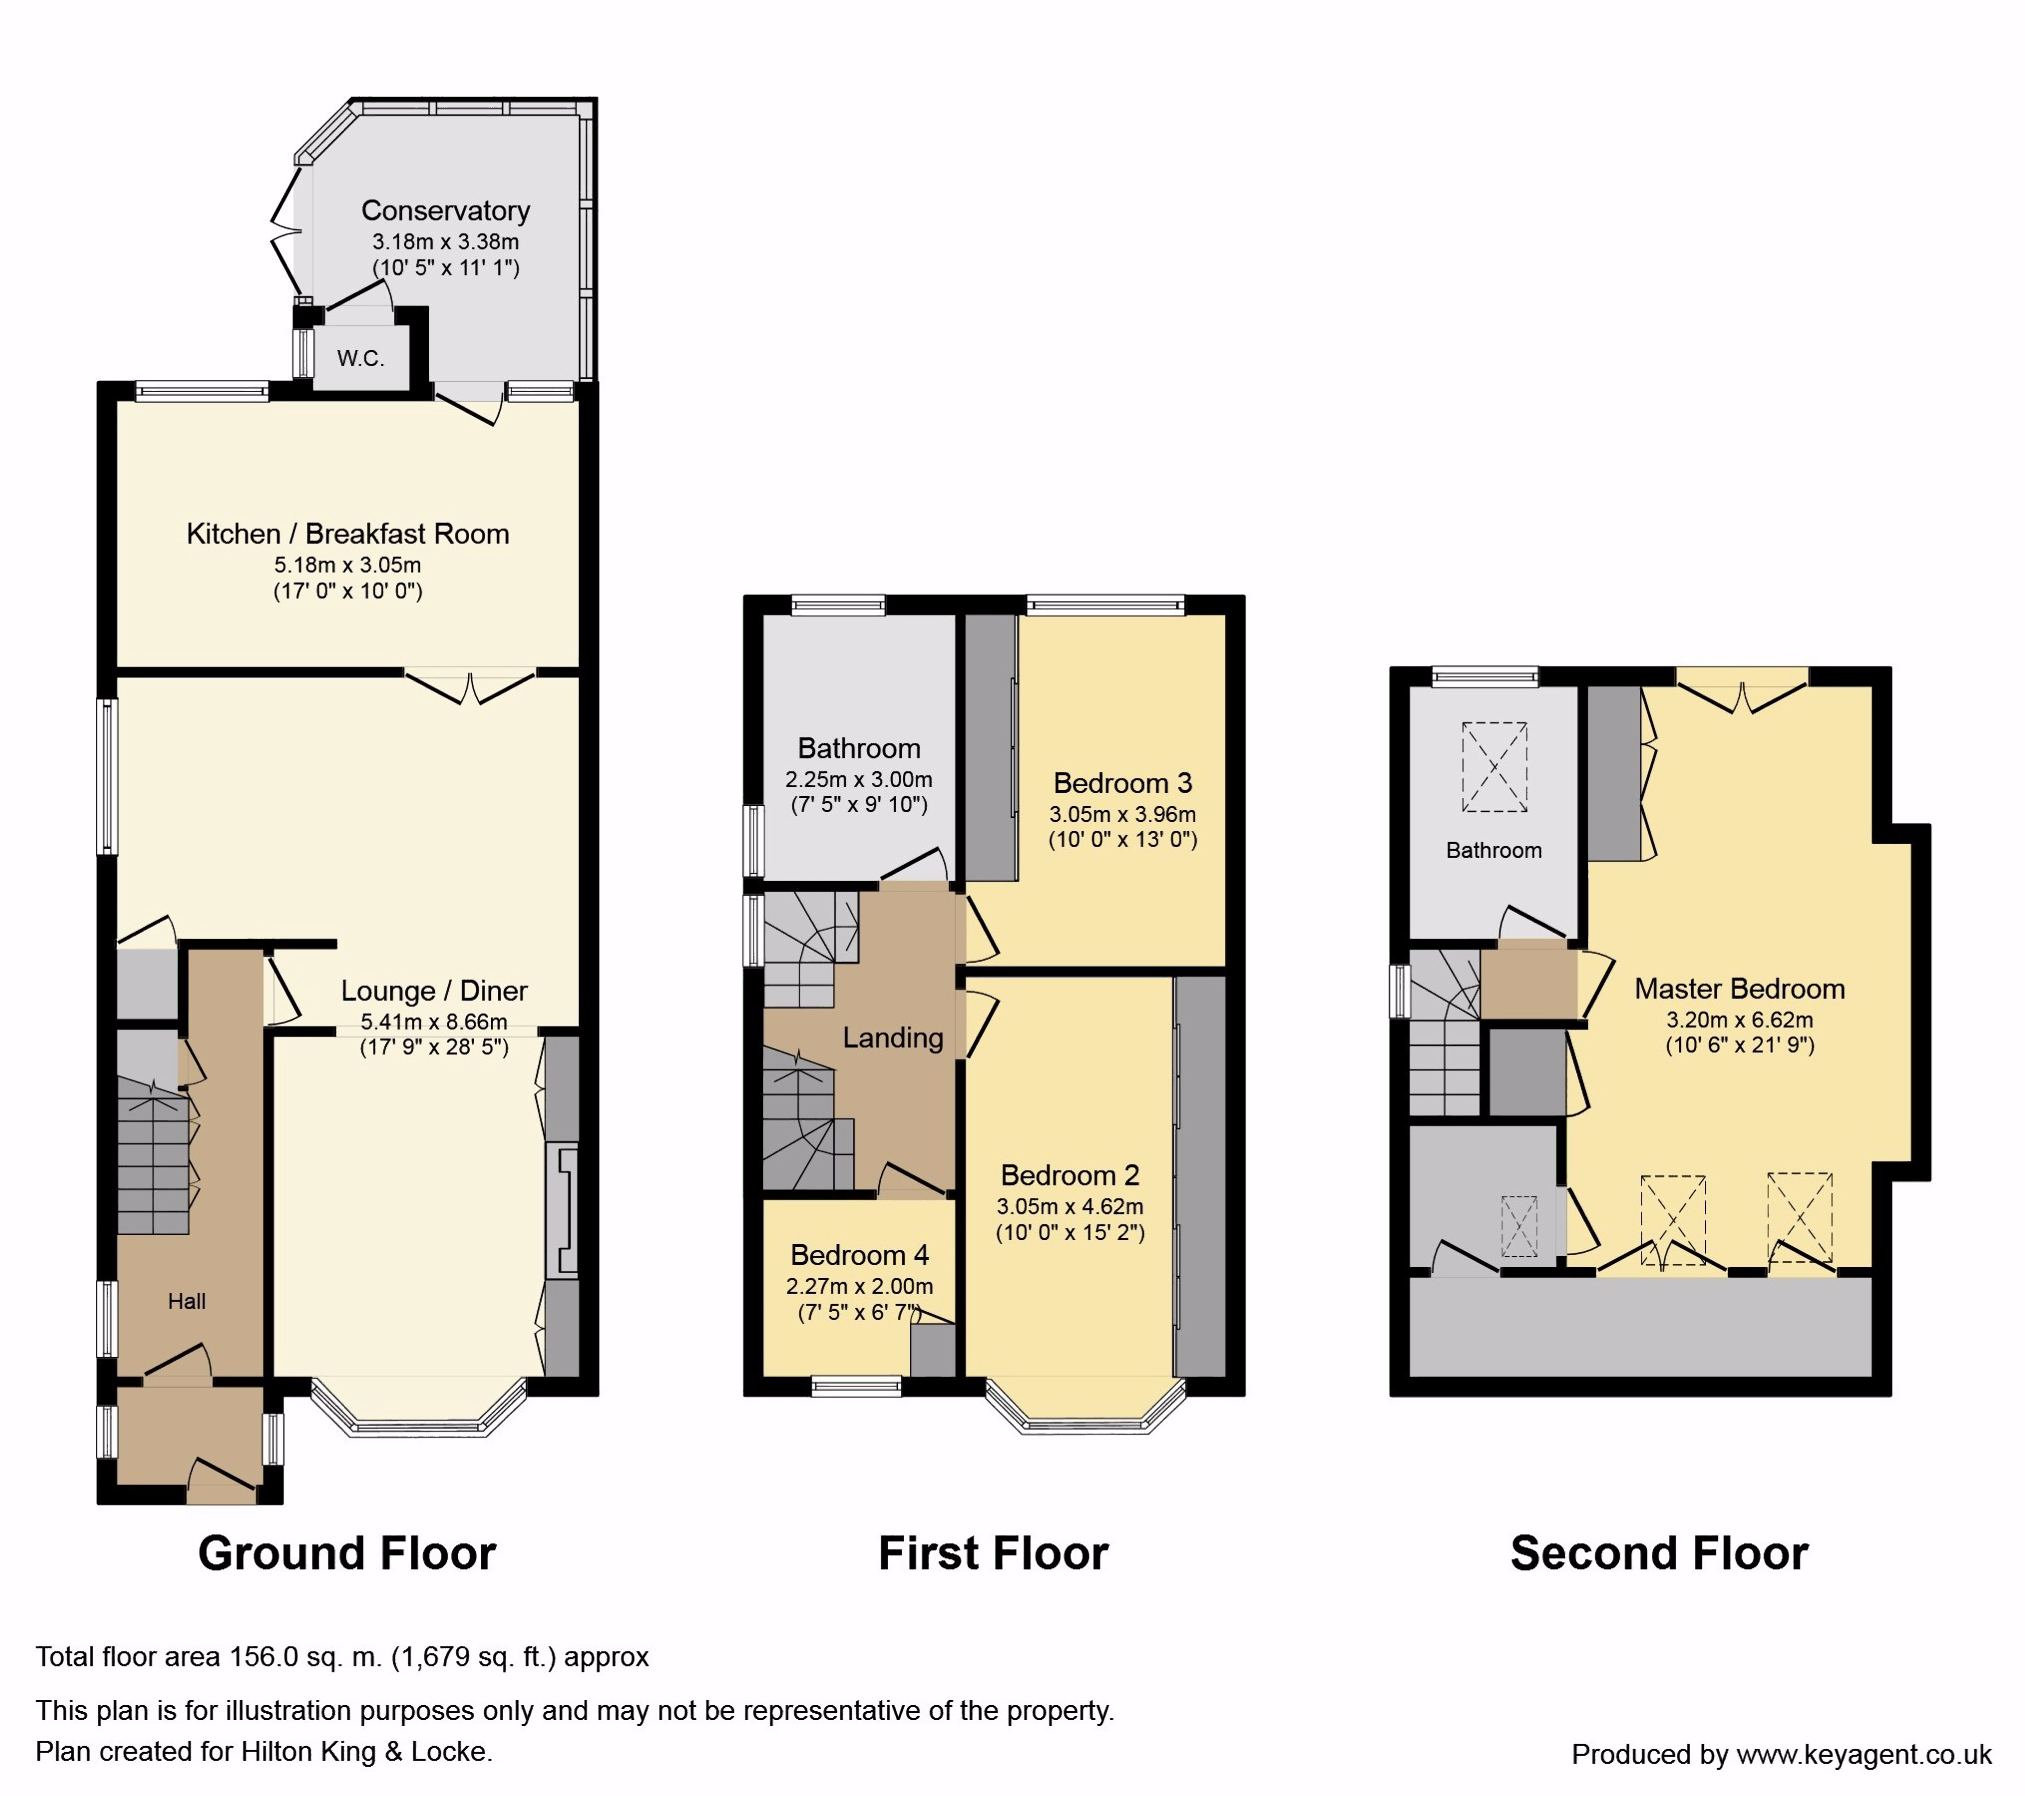 Floorplans For Mellow Lane East, Hayes End, Middlesex